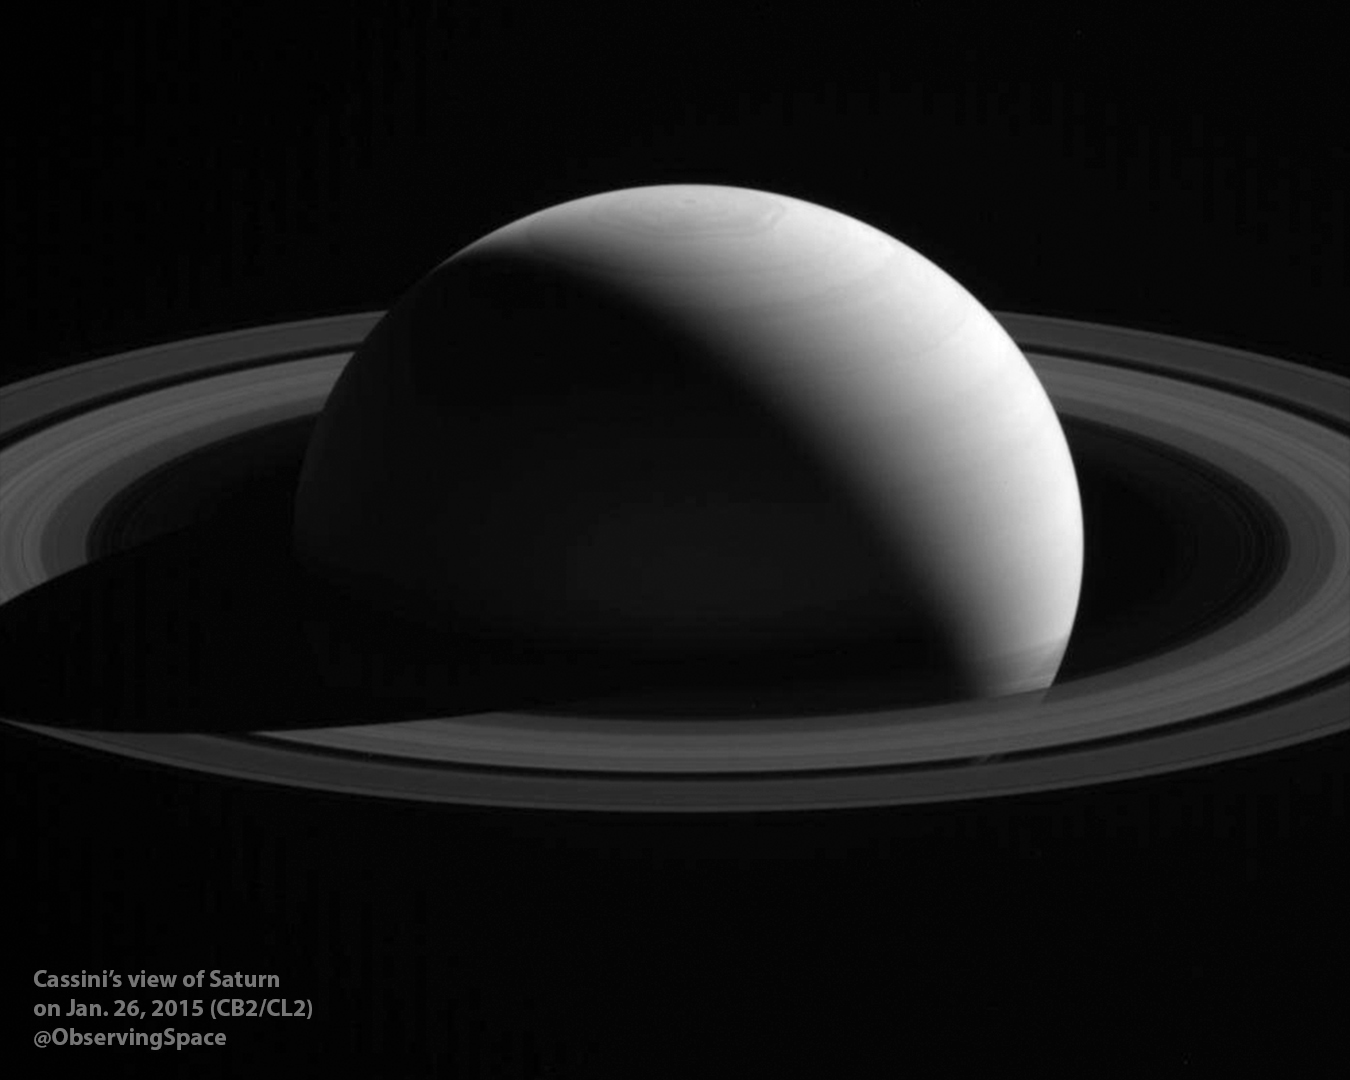 Saturn on Jan. 26, 2015